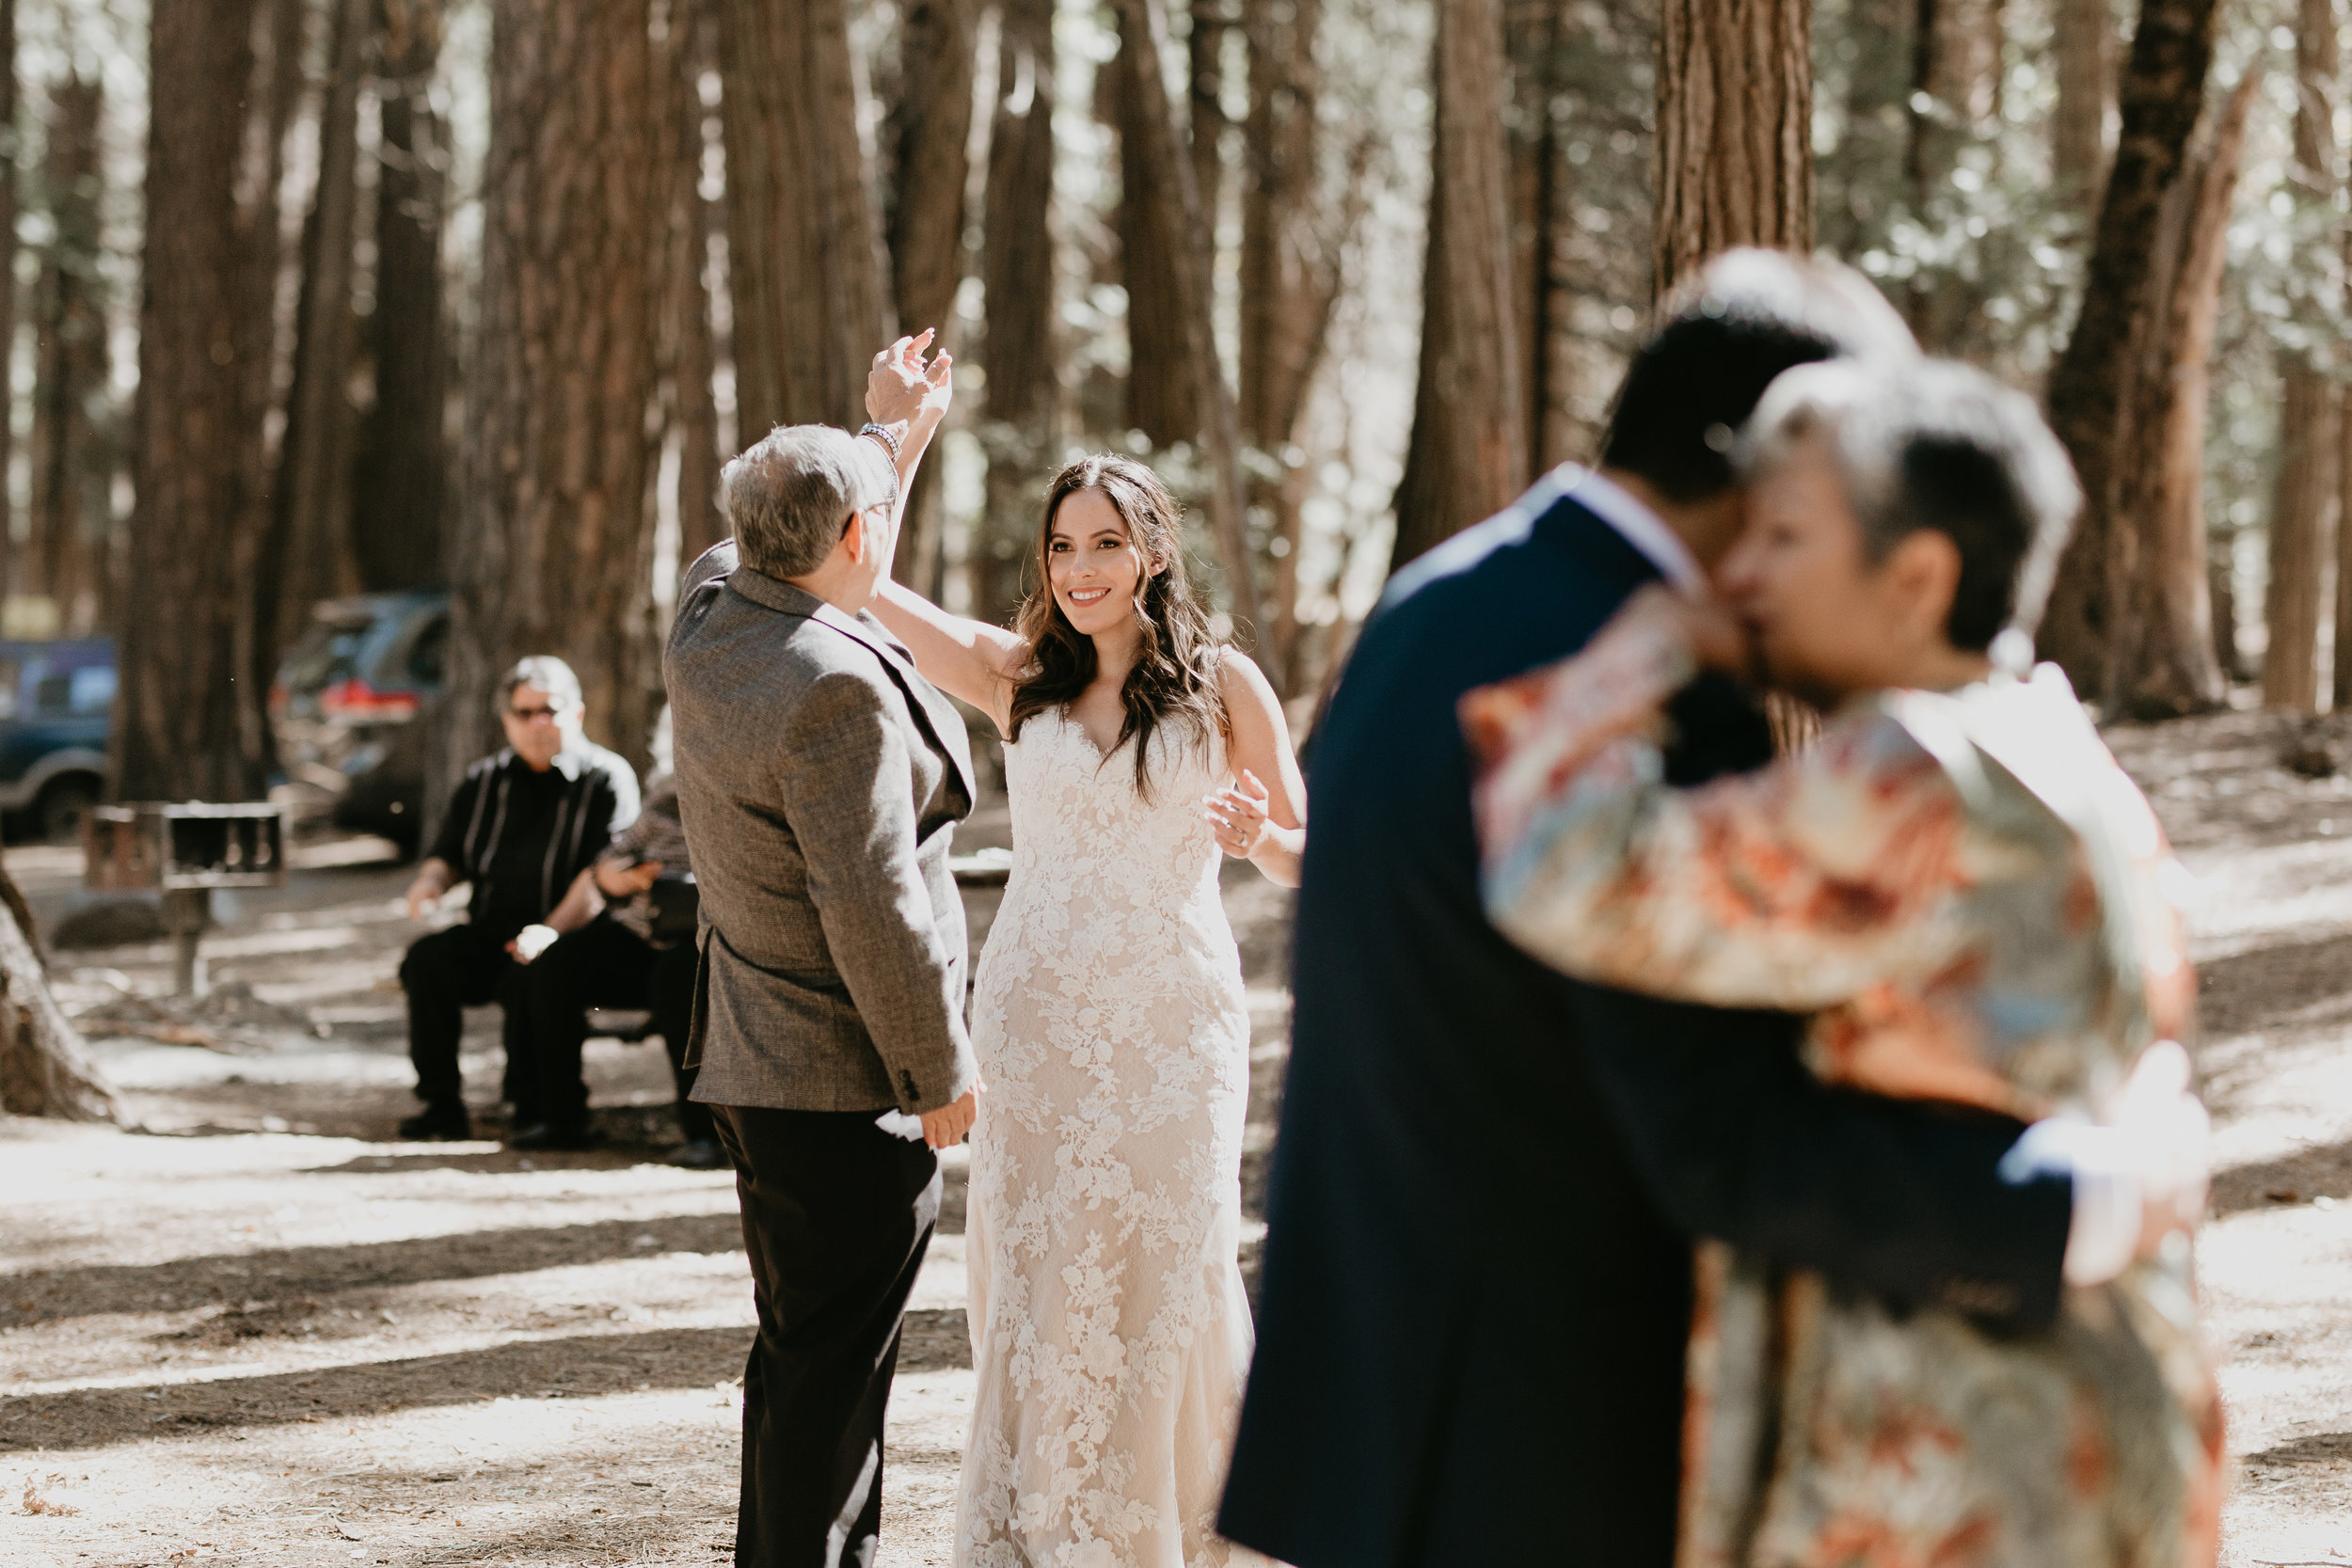 nicole-daacke-photography-intimate-elopement-wedding-yosemite-national-park-california-taft-point-sunset-photos-yosemite-valley-tunnel-view-first-look-sunrise-golden-granite-hiking-adventure-wedding-adventurous-elopement-photographer-85.jpg